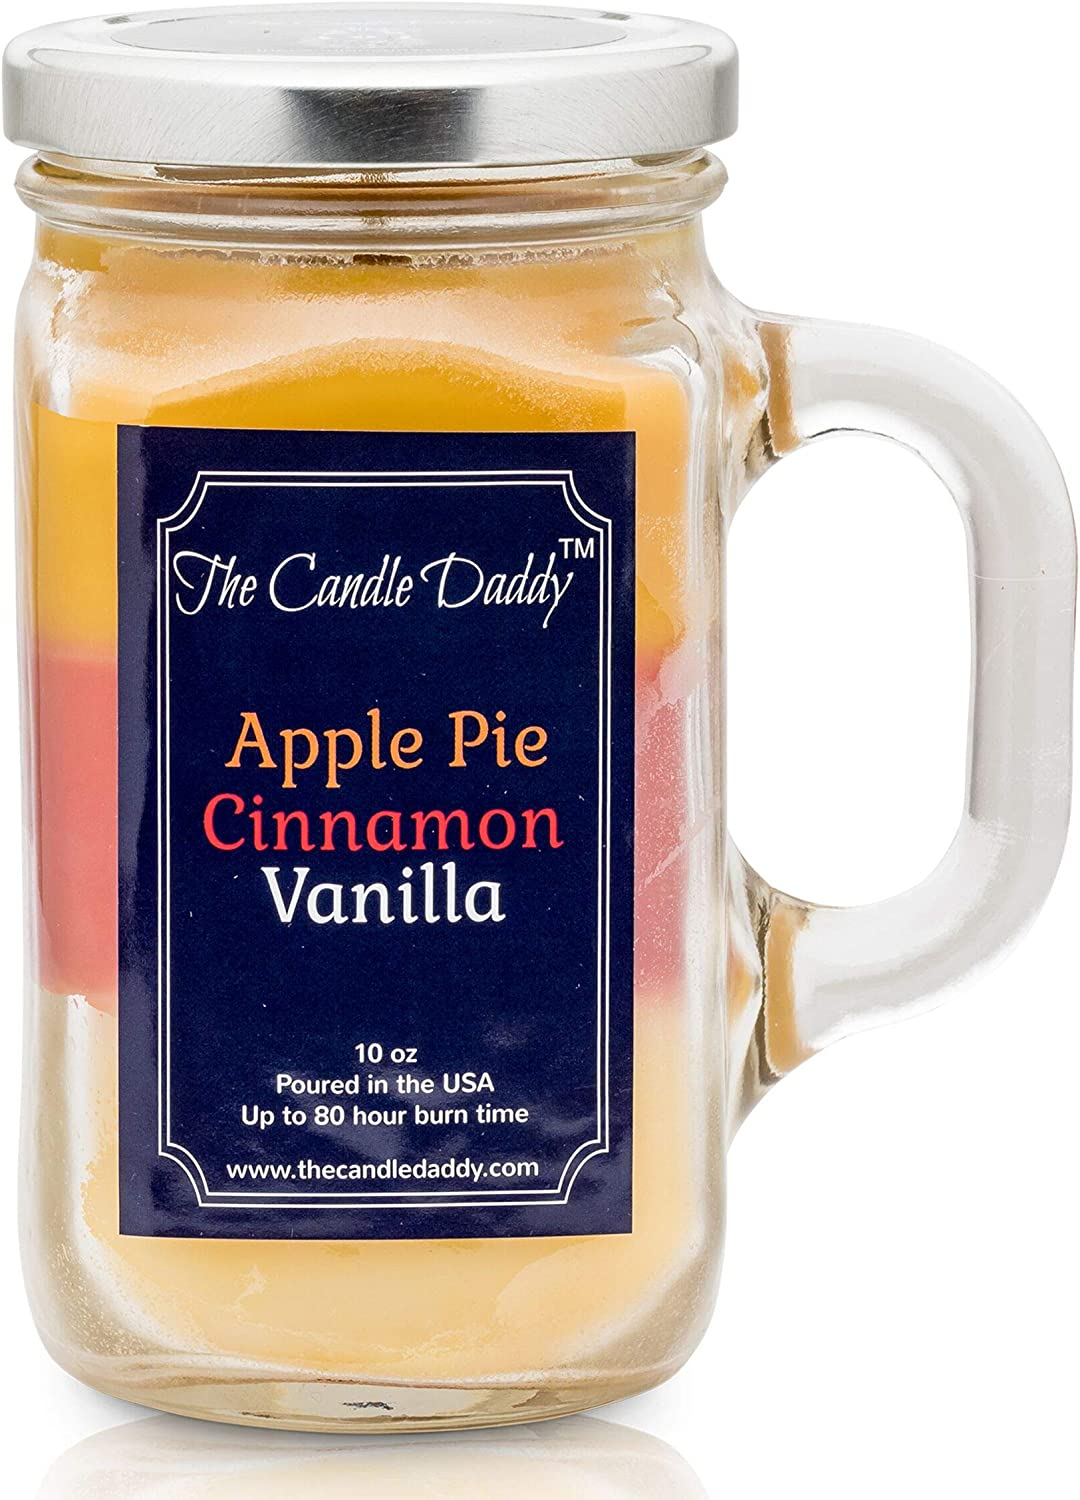 Apple Pie- Cinnamon - Vanilla Scented Candle - 10 oz 80 Hour Burn- Made in USA